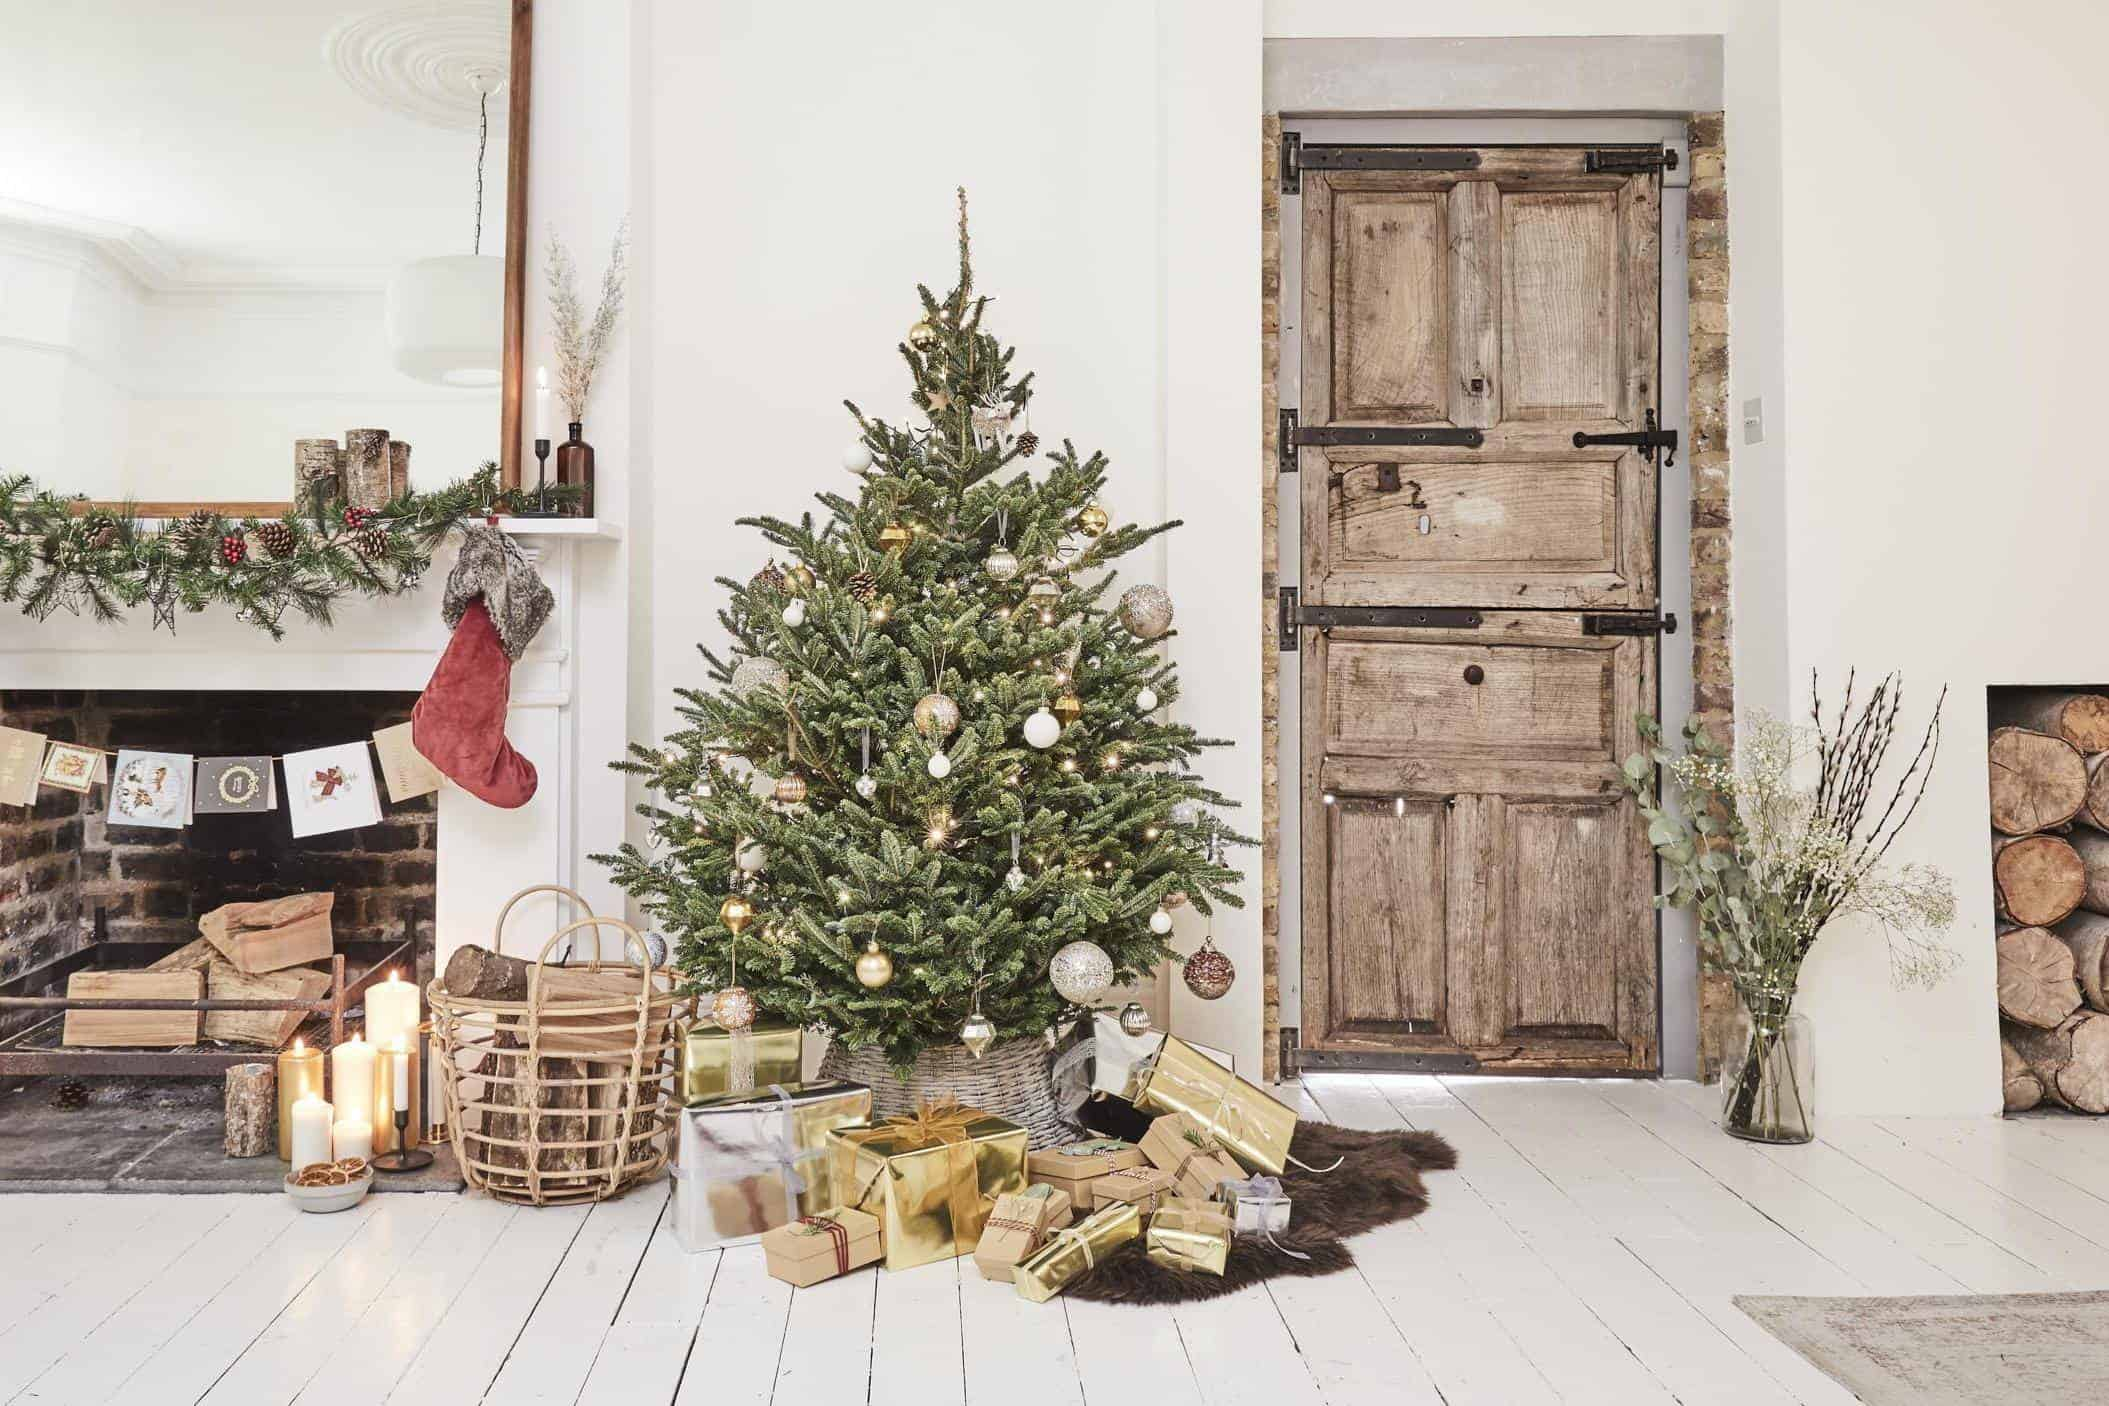 Christmas tree care guide: how to keep a real Christmas ...